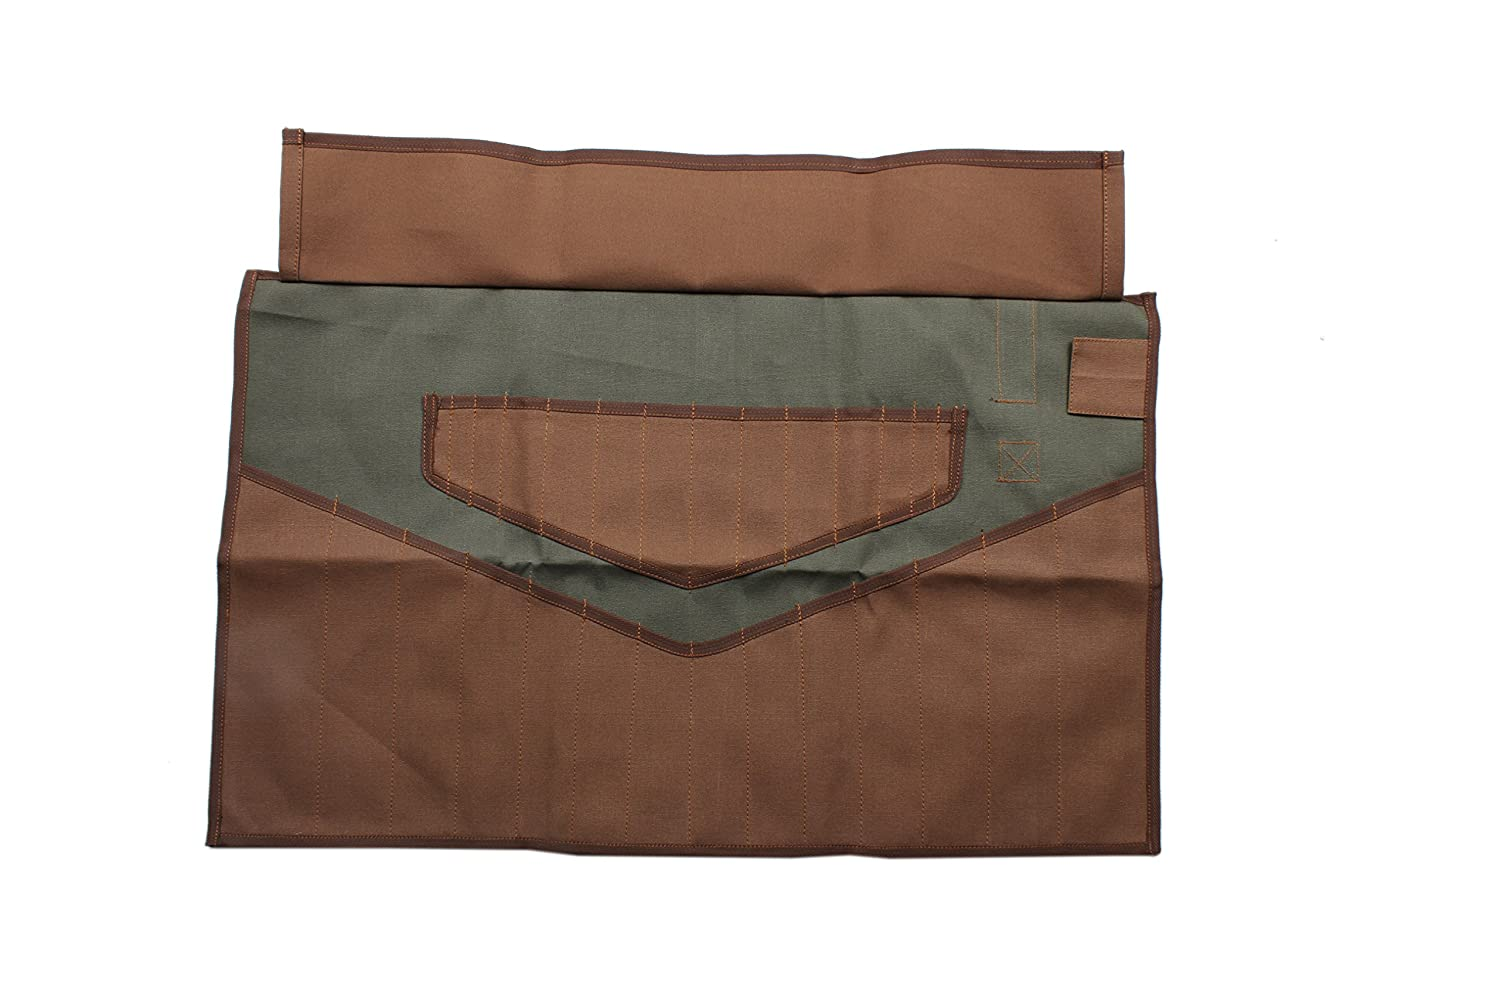 Asian Treasures WR 160004 Wrench Roll 28 Pocket Olive Drab//Cinnamon Brown HW 100/% Dyed Cotton Canvas